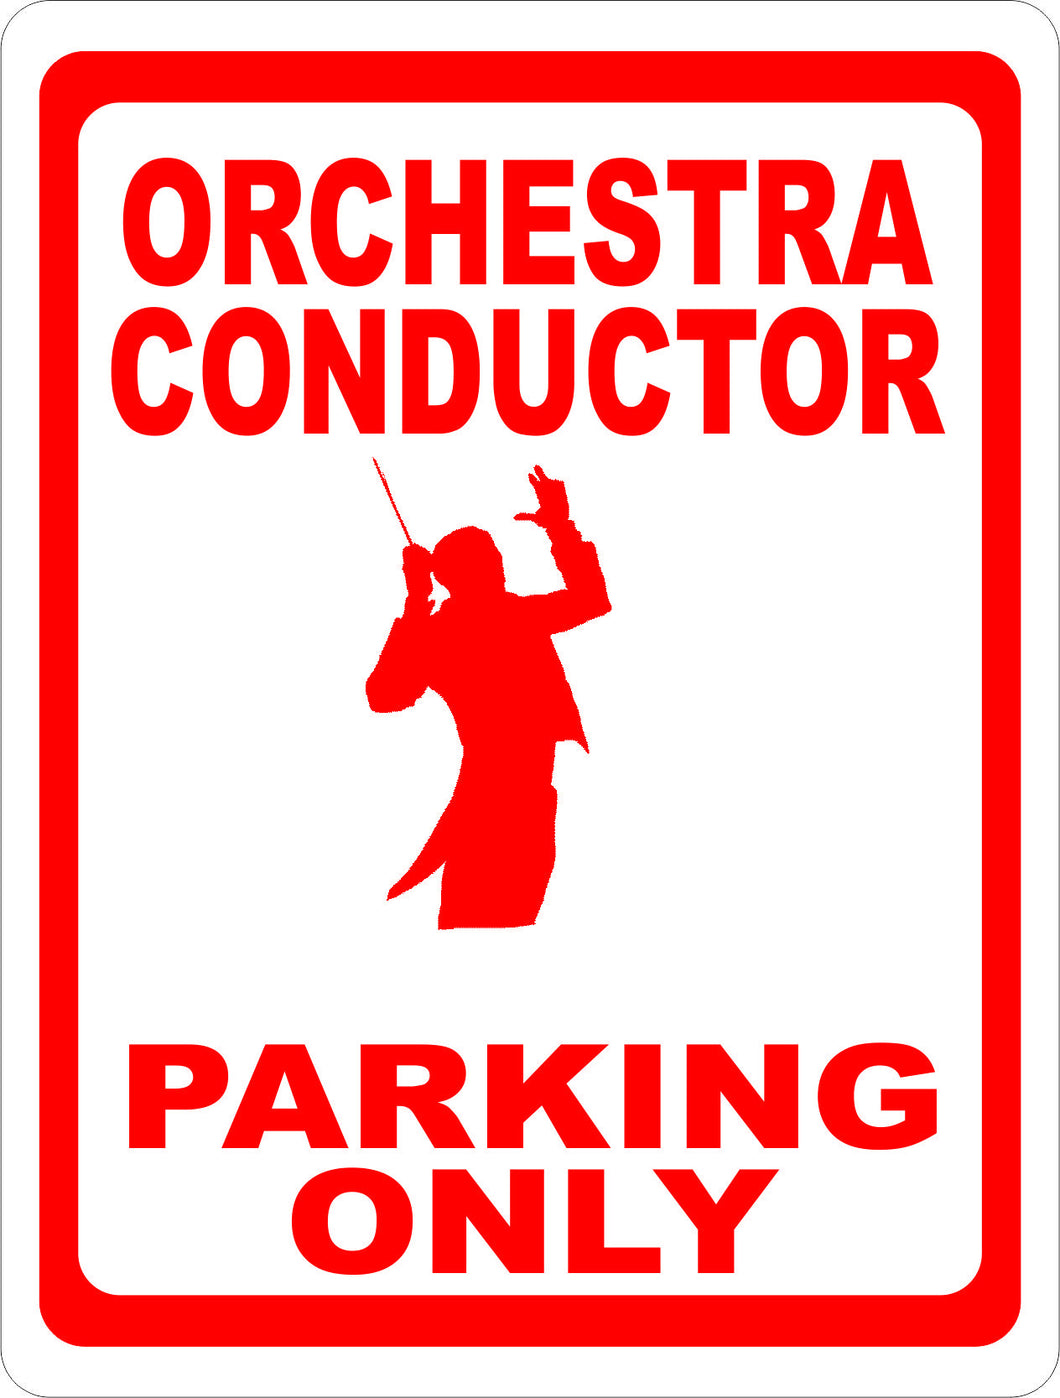 Orchesta Conductor Parking Only Sign - Signs & Decals by SalaGraphics